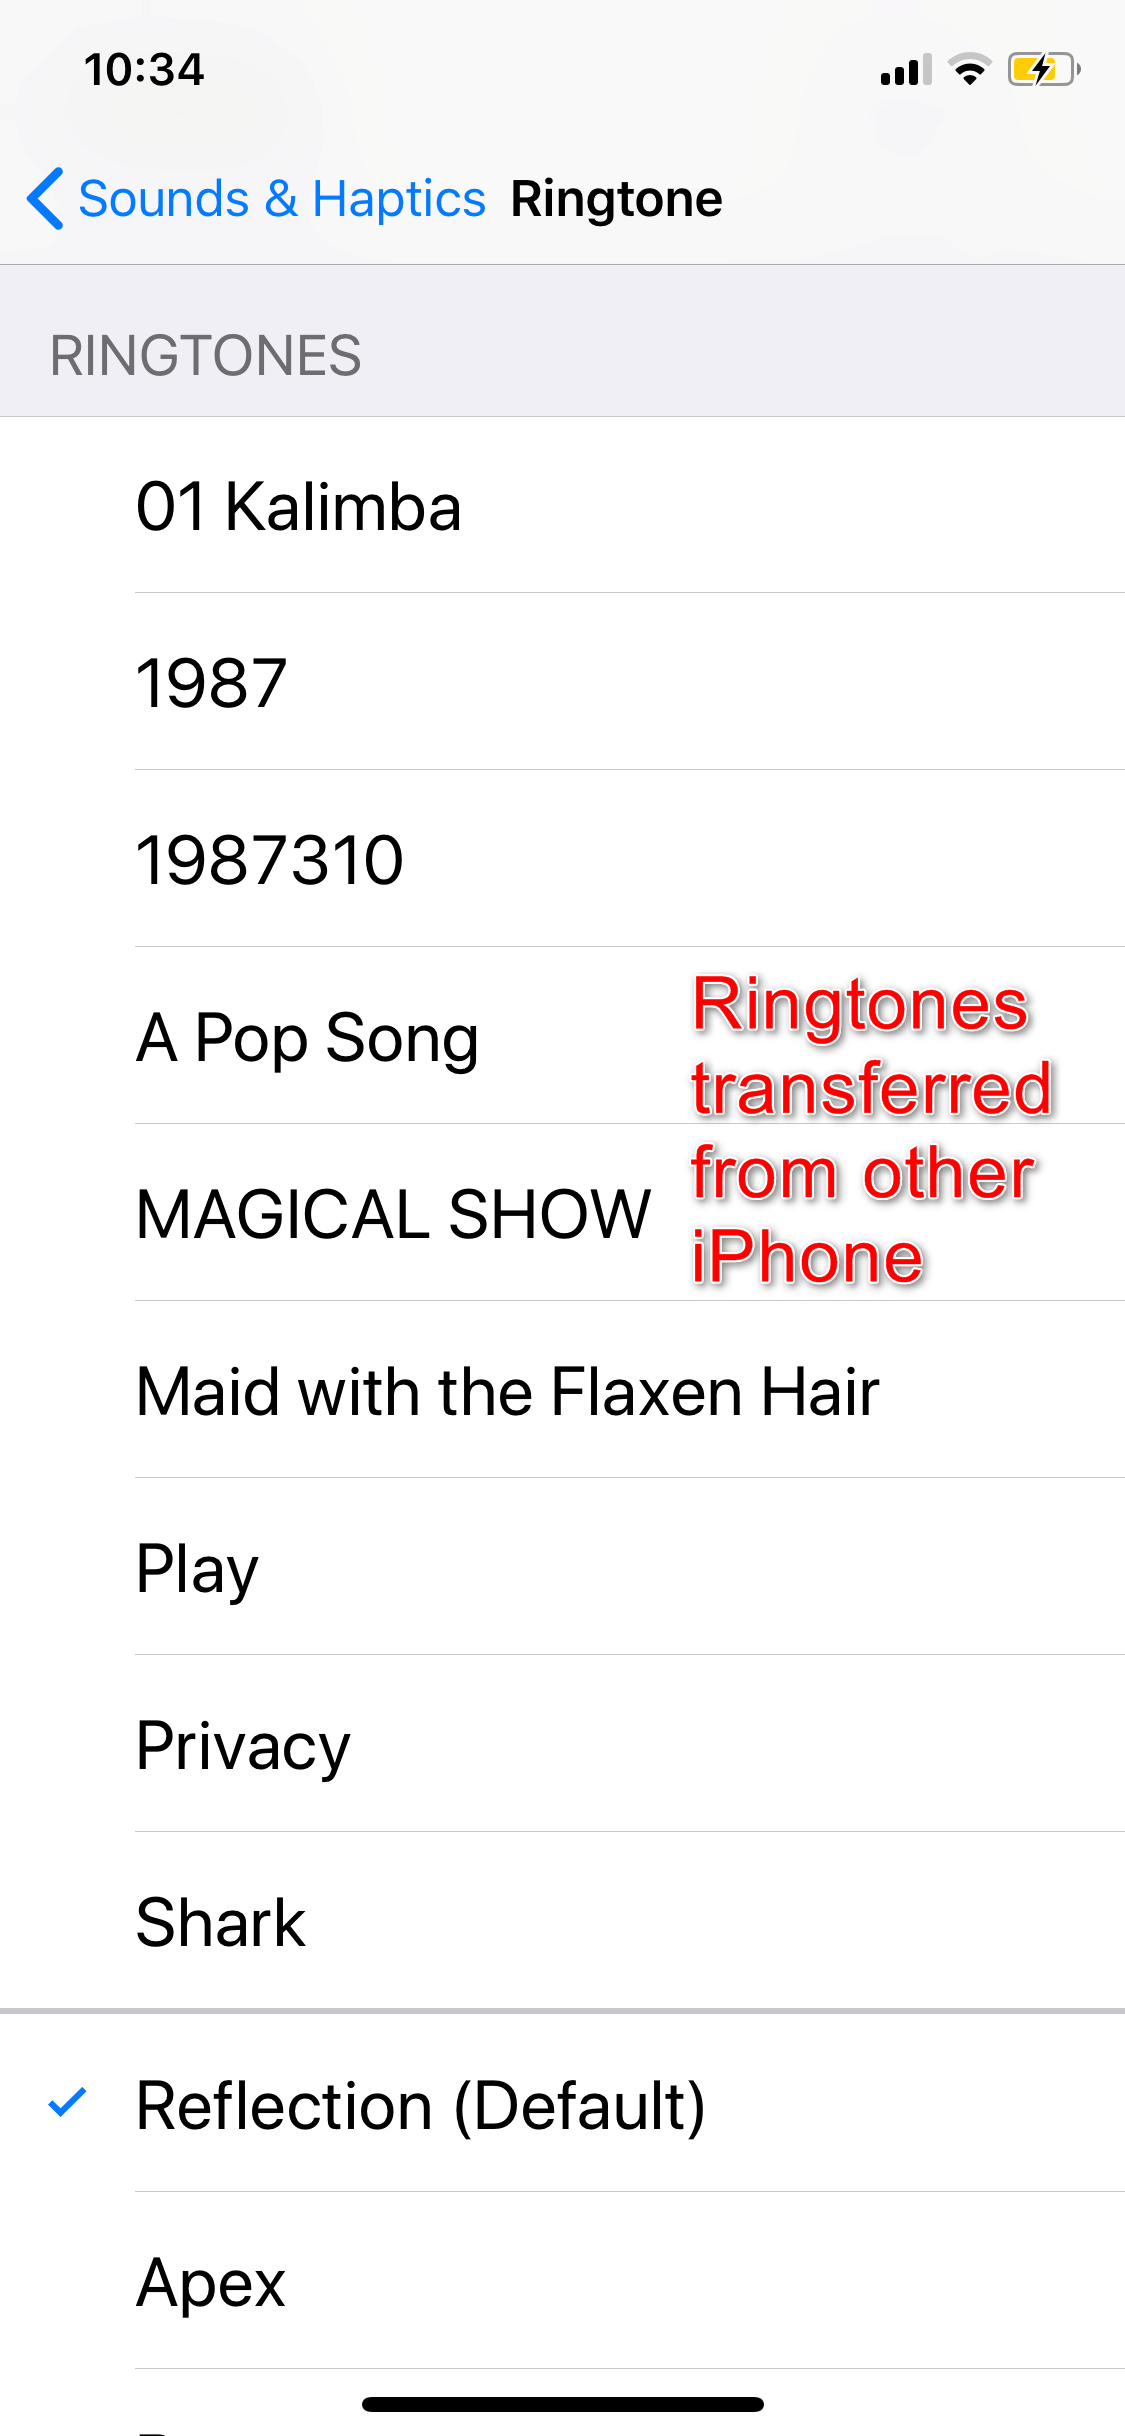 How to Transfer Ringtones from iPhone to iPhone with AnyTrans – Step 4